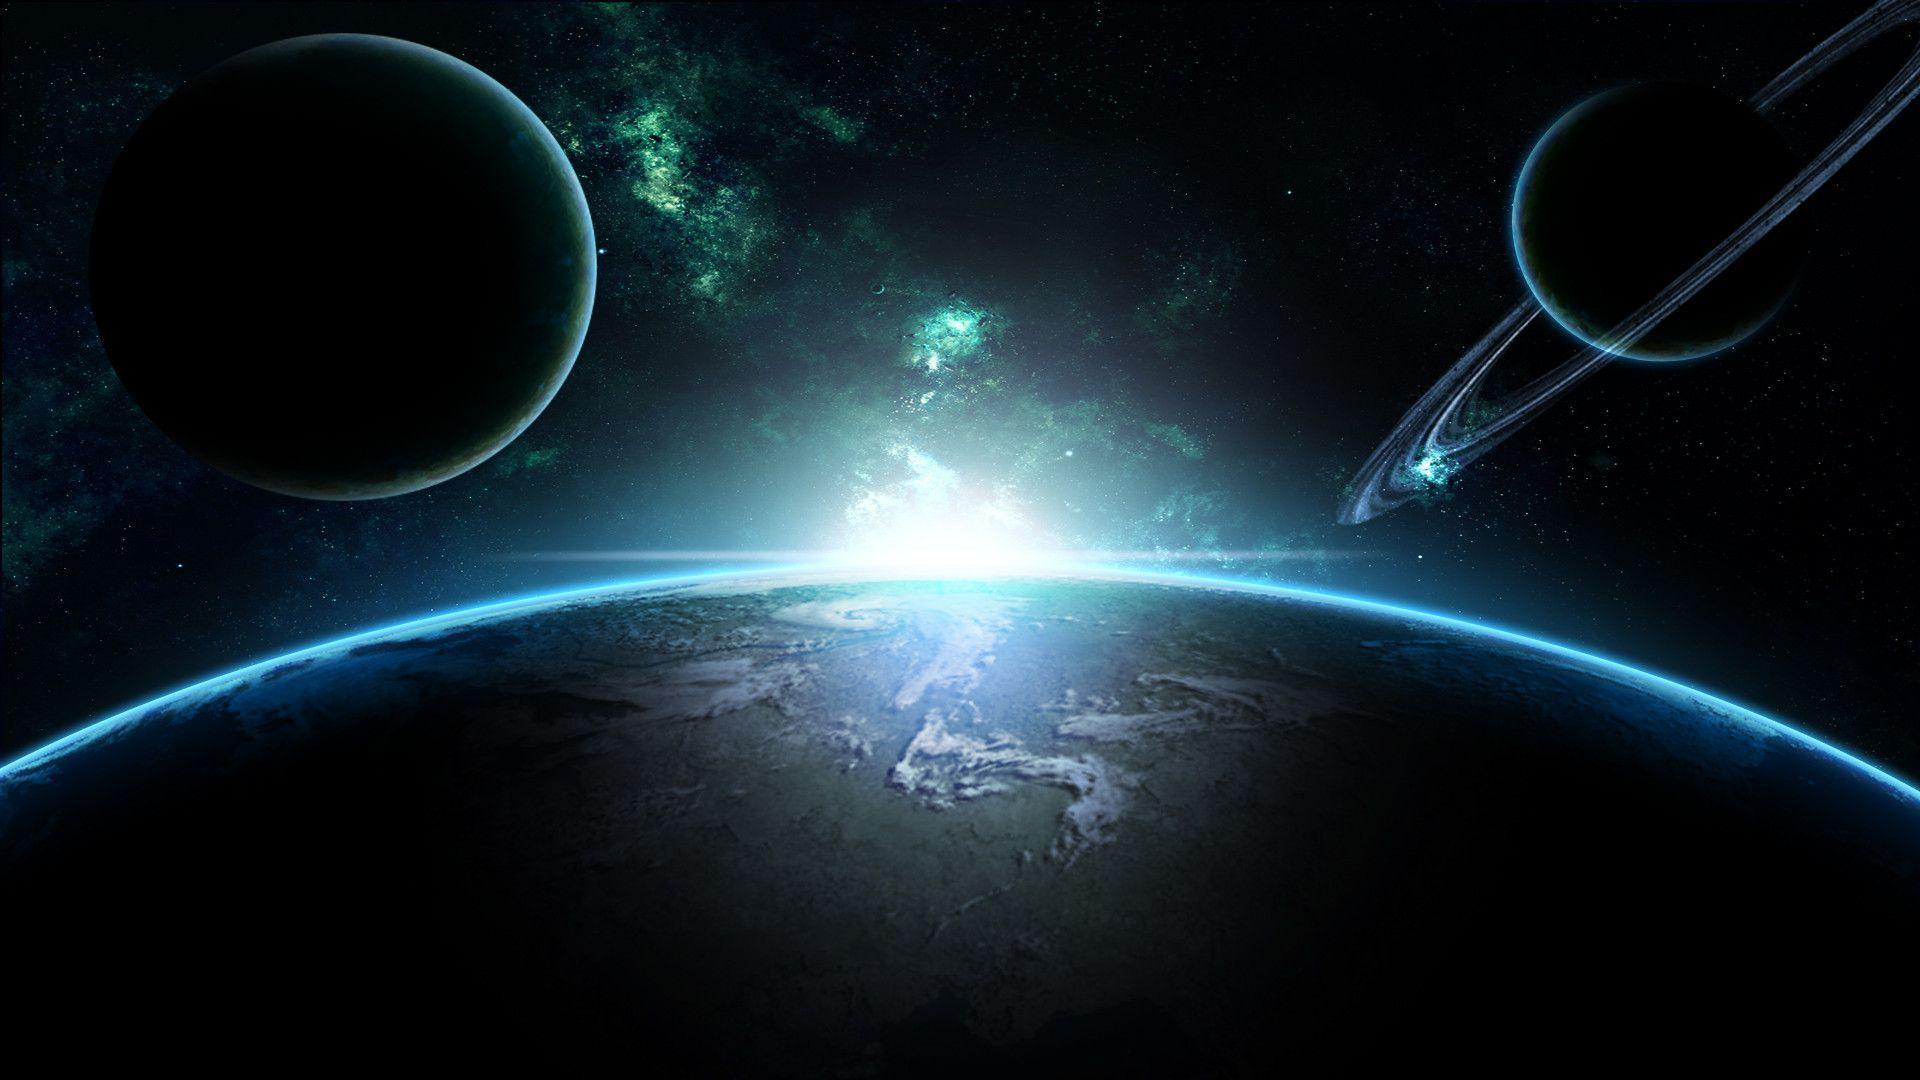 cool planet earth - photo #18